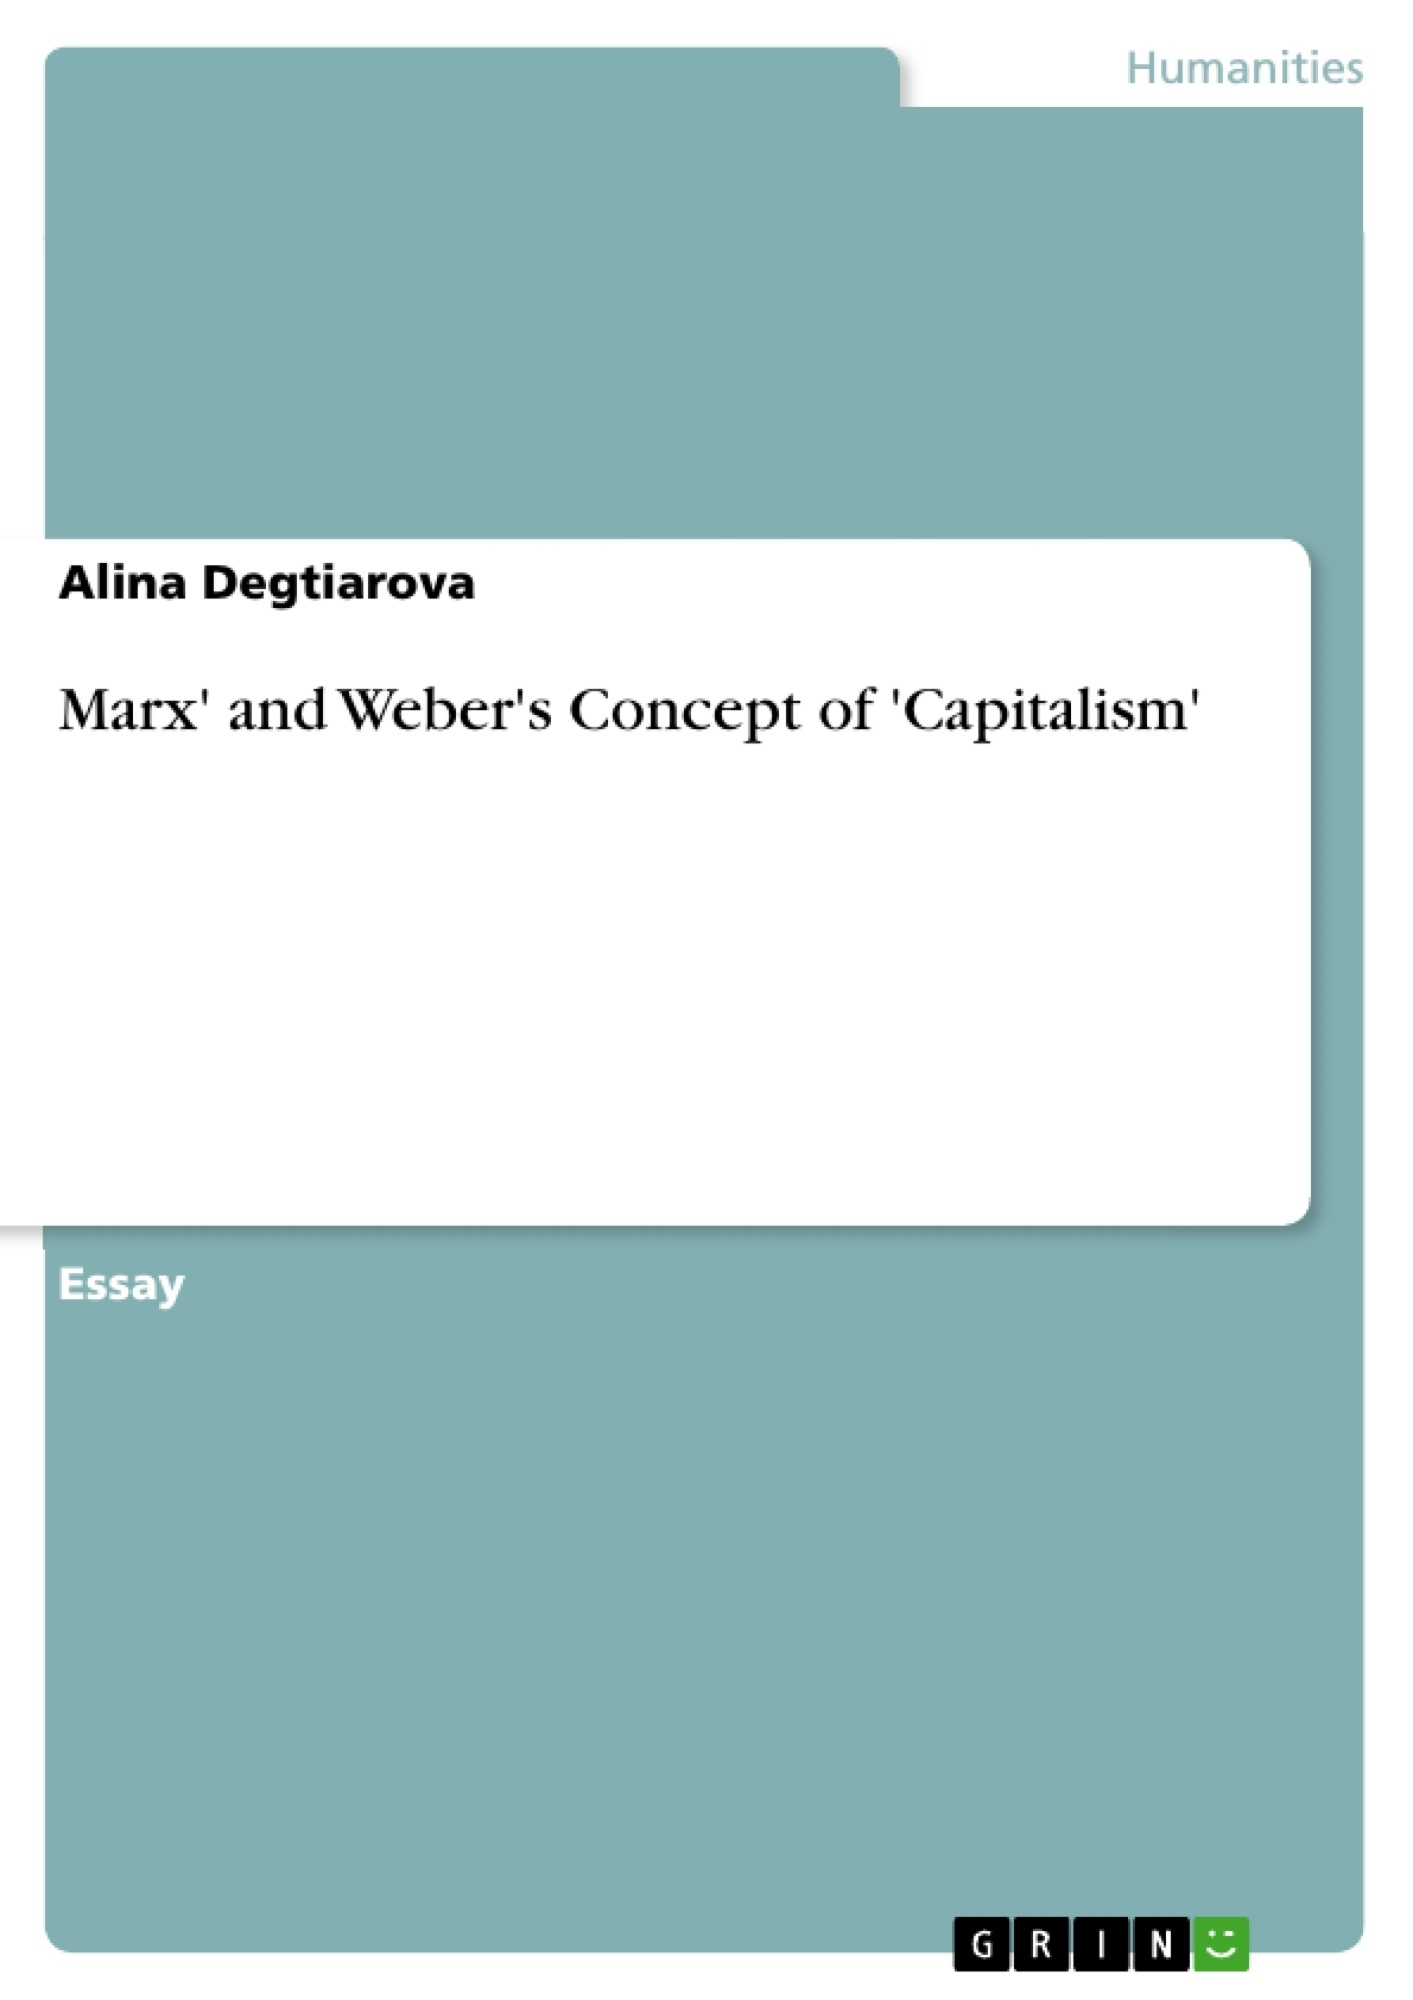 Title: Marx' and Weber's Concept of 'Capitalism'